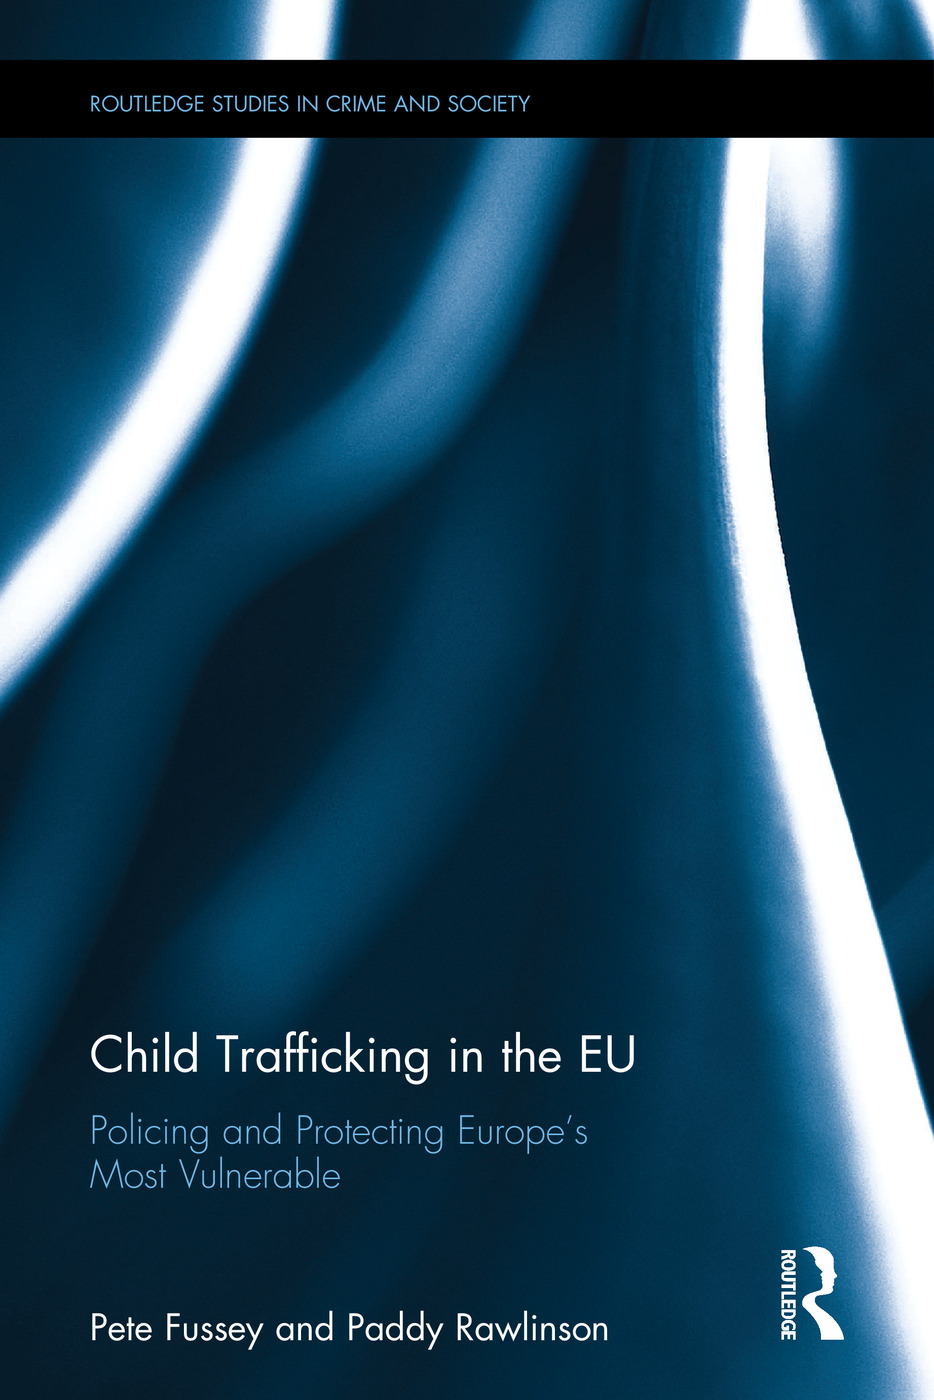 Child Trafficking in the EU: Policing and Protecting Europe's Most Vulnerable book cover